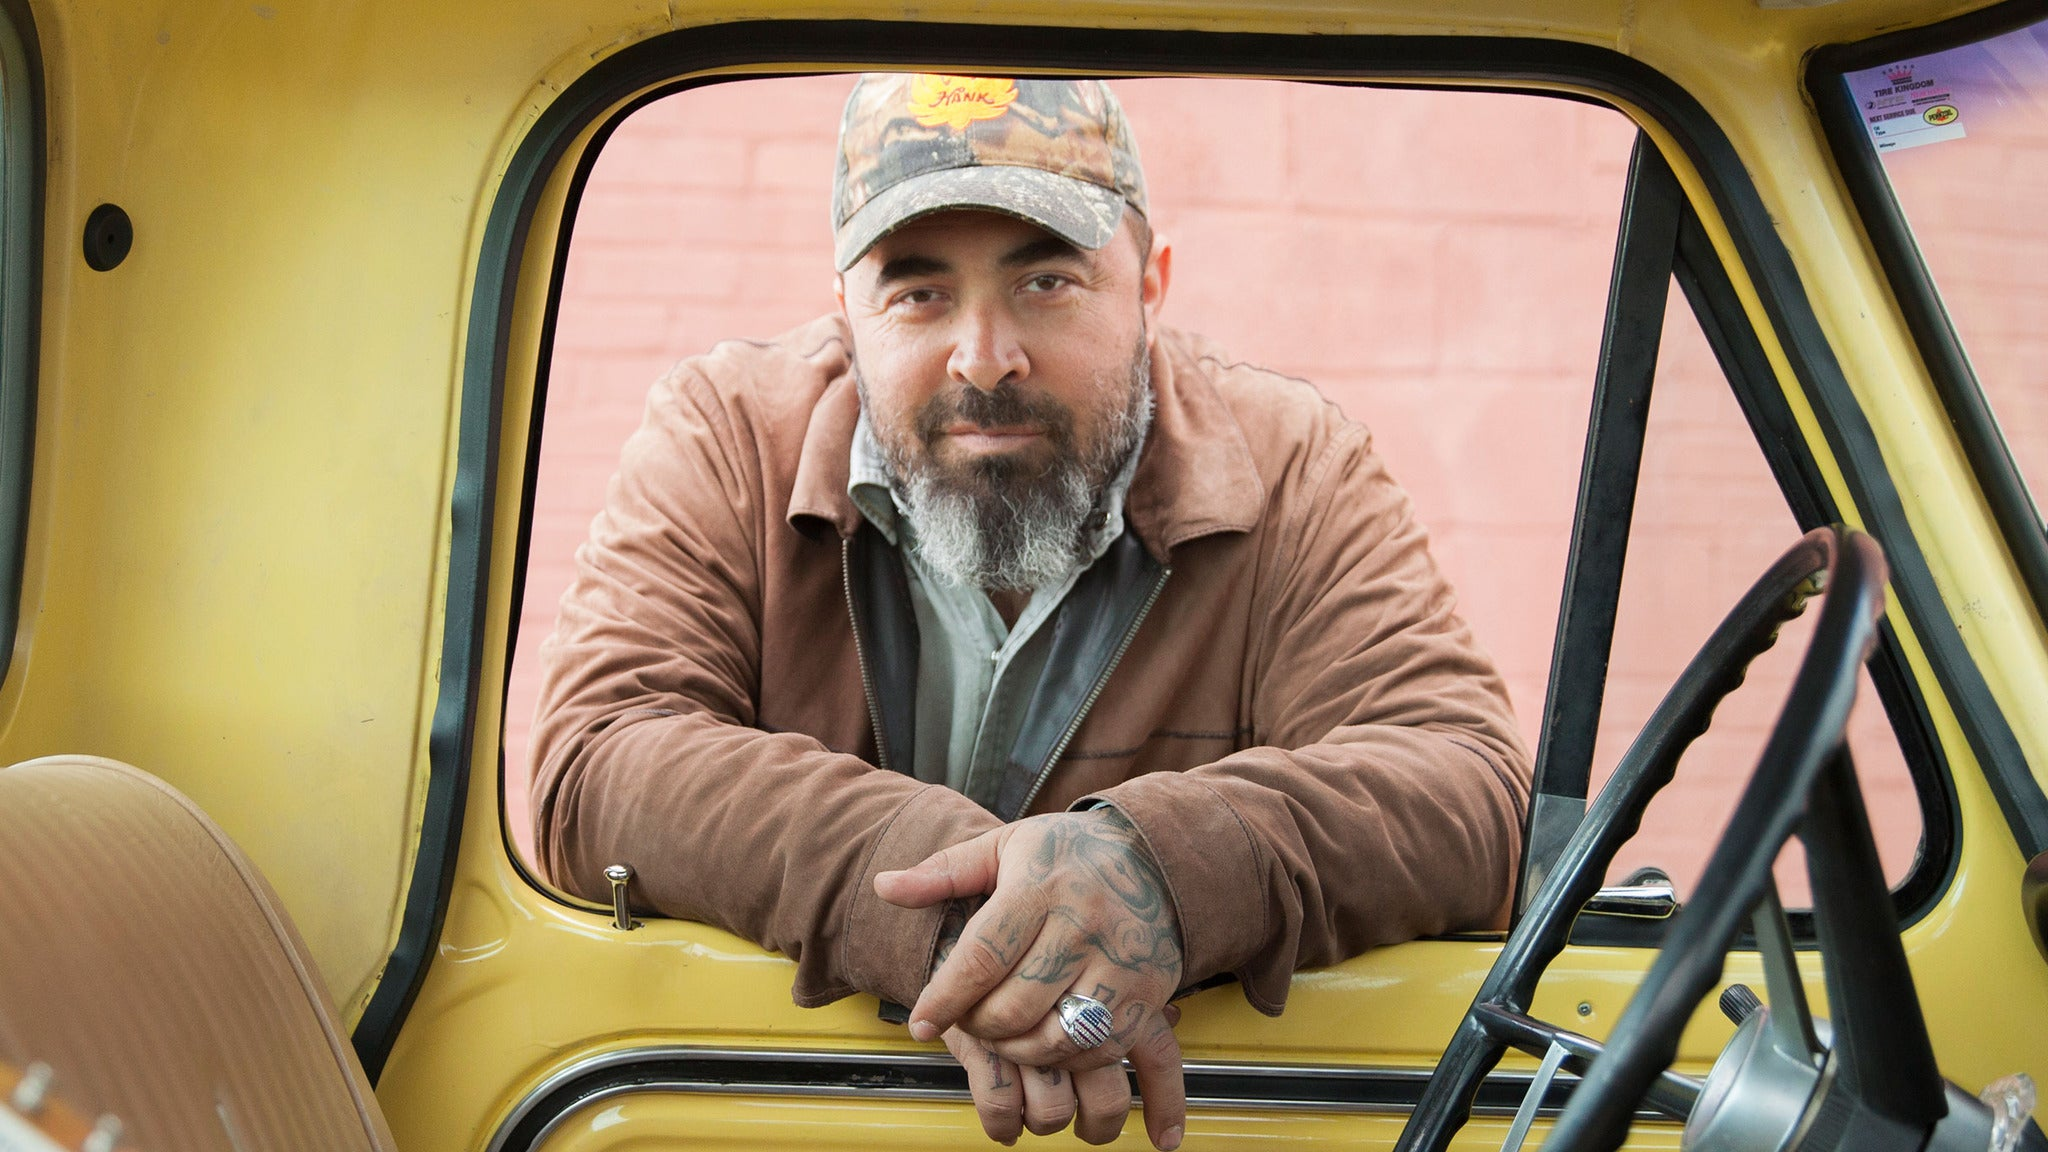 Aaron Lewis at Eight Seconds Saloon - Indianapolis, IN 46224